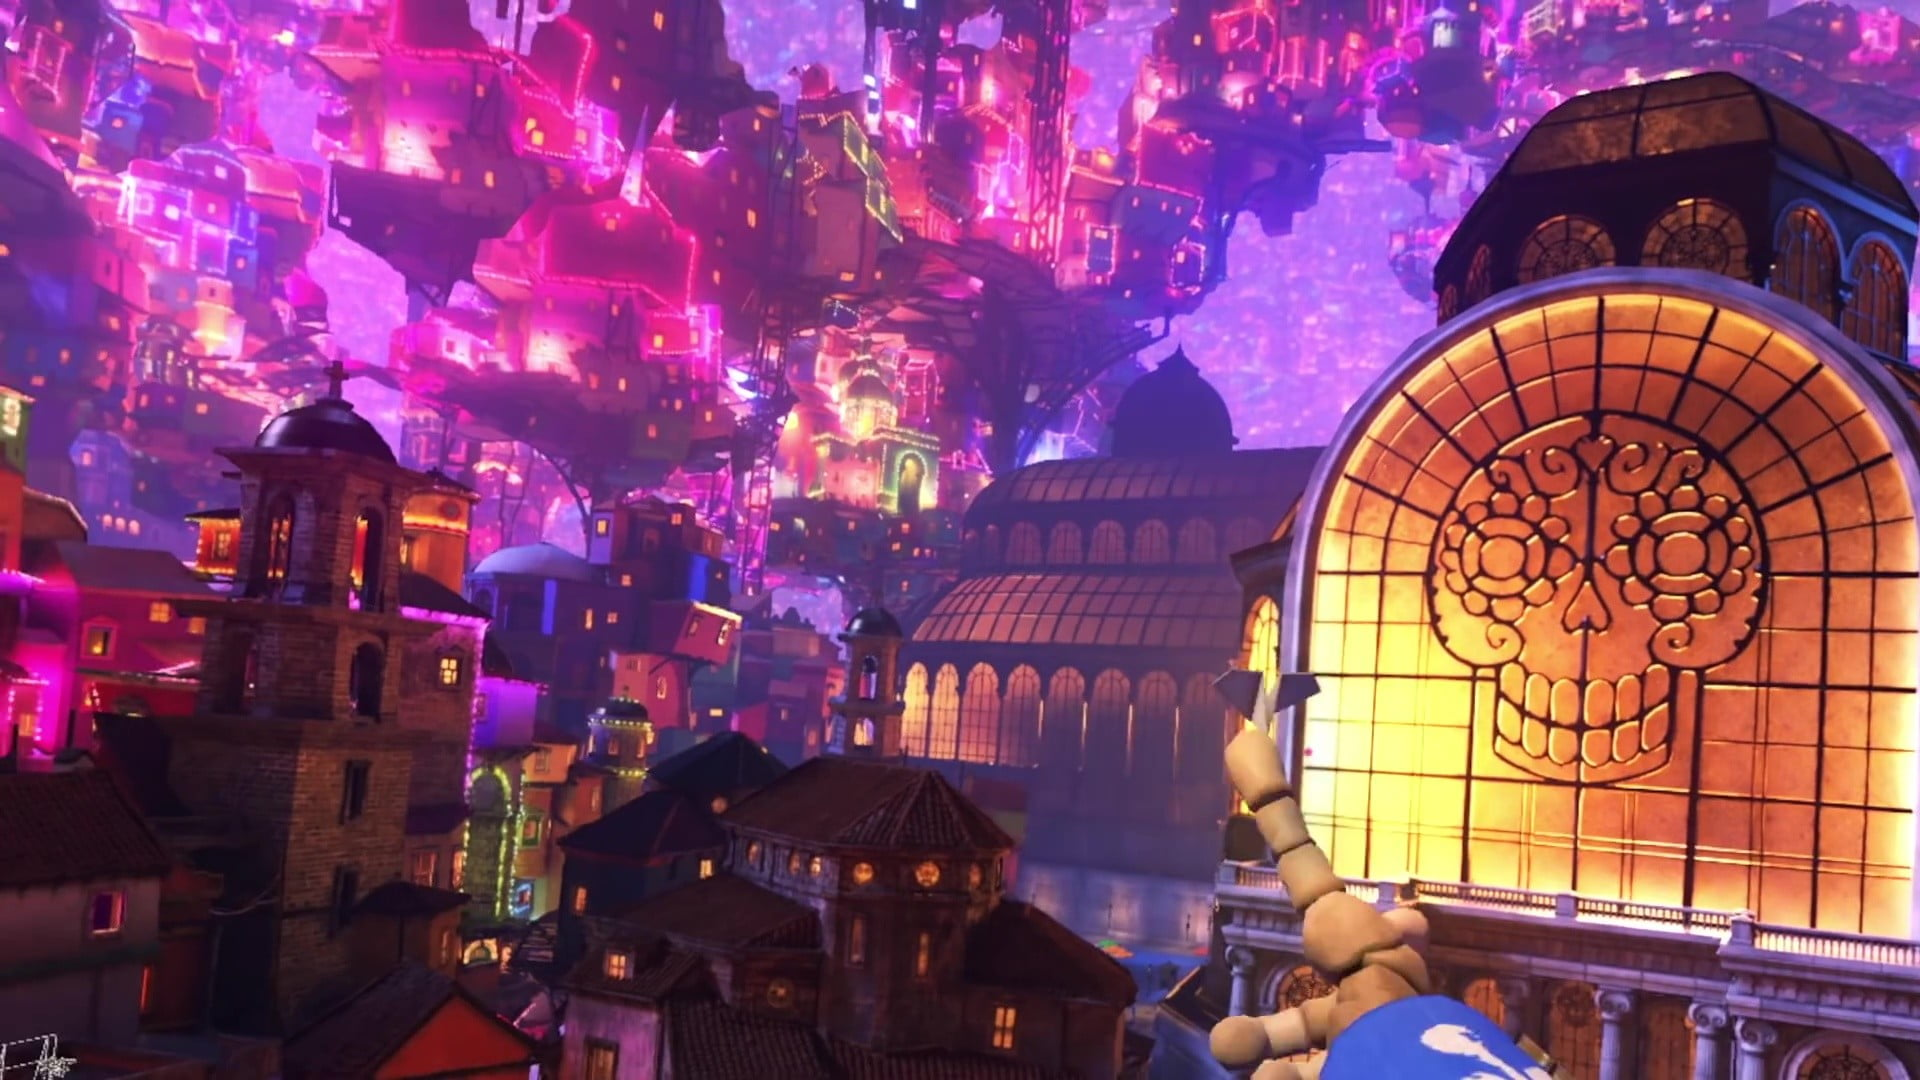 Pixar Plans To Use Techniques Learned From Coco Vr For Toy